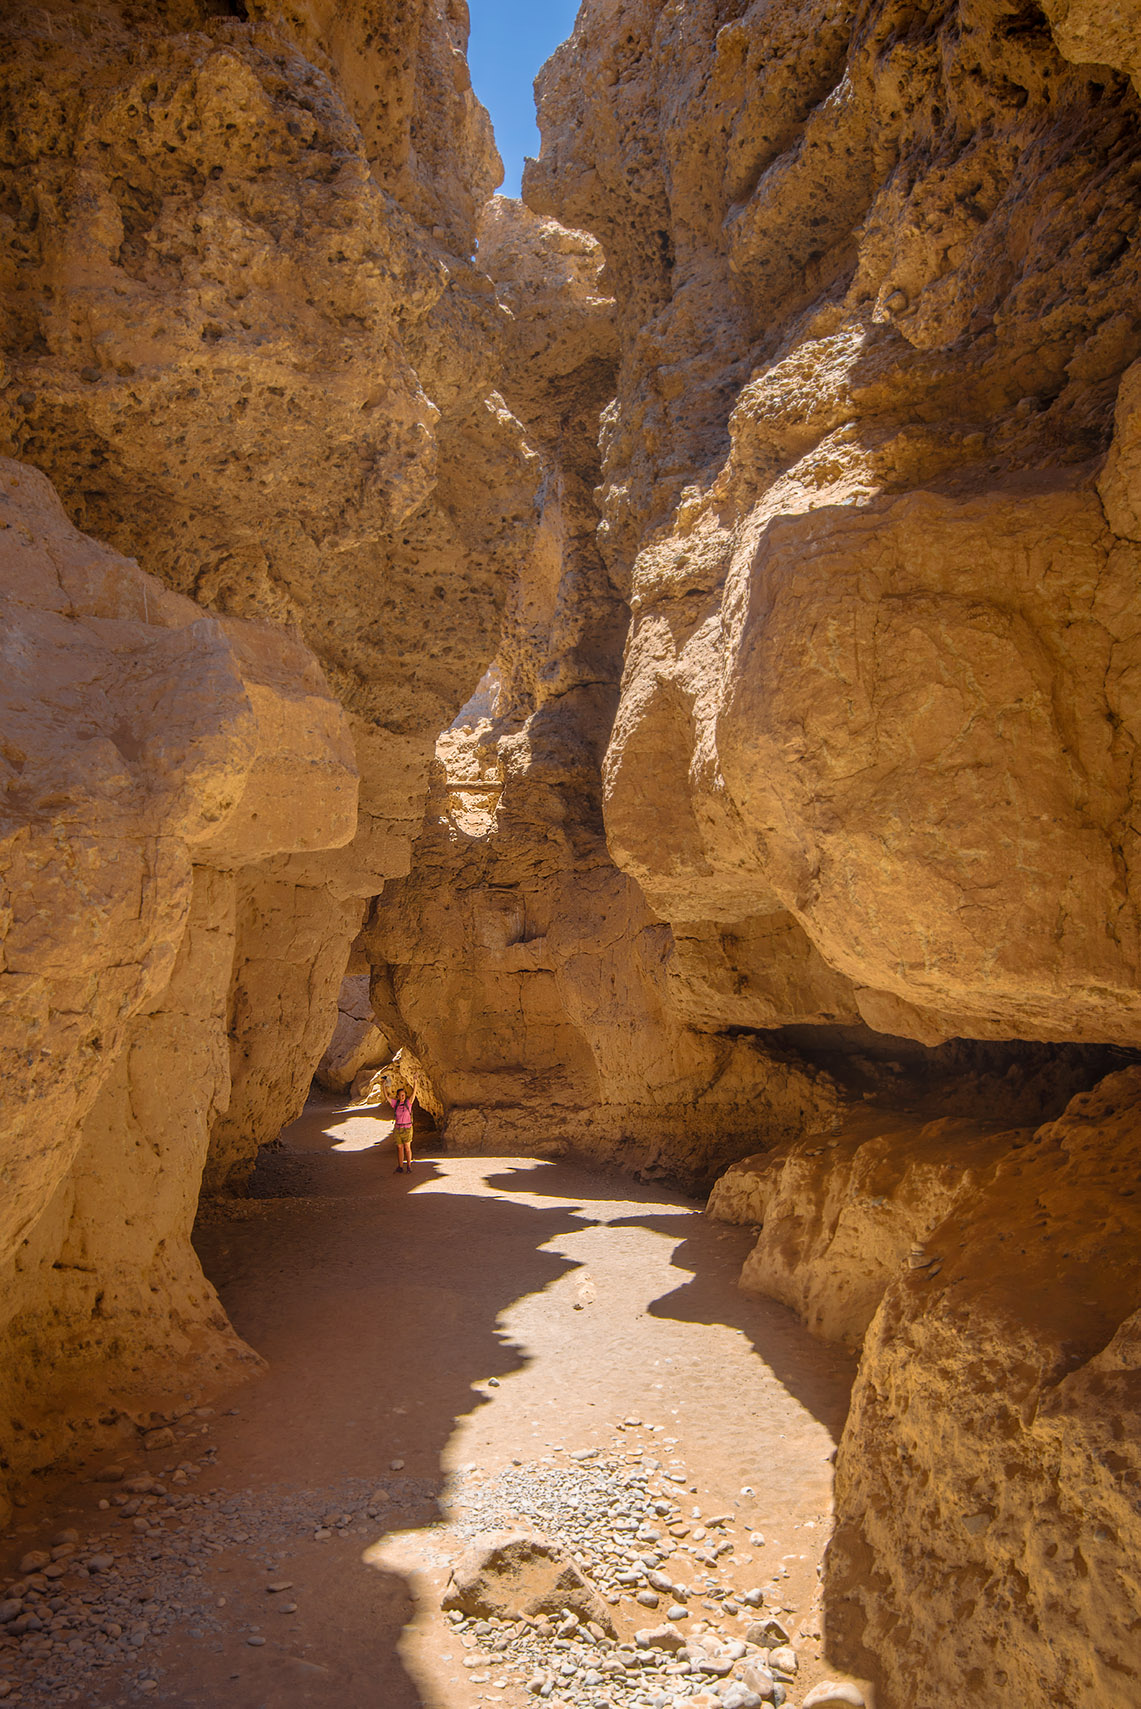 Donna standing, arms outstretched, within the depths of Sesriem Canyon.